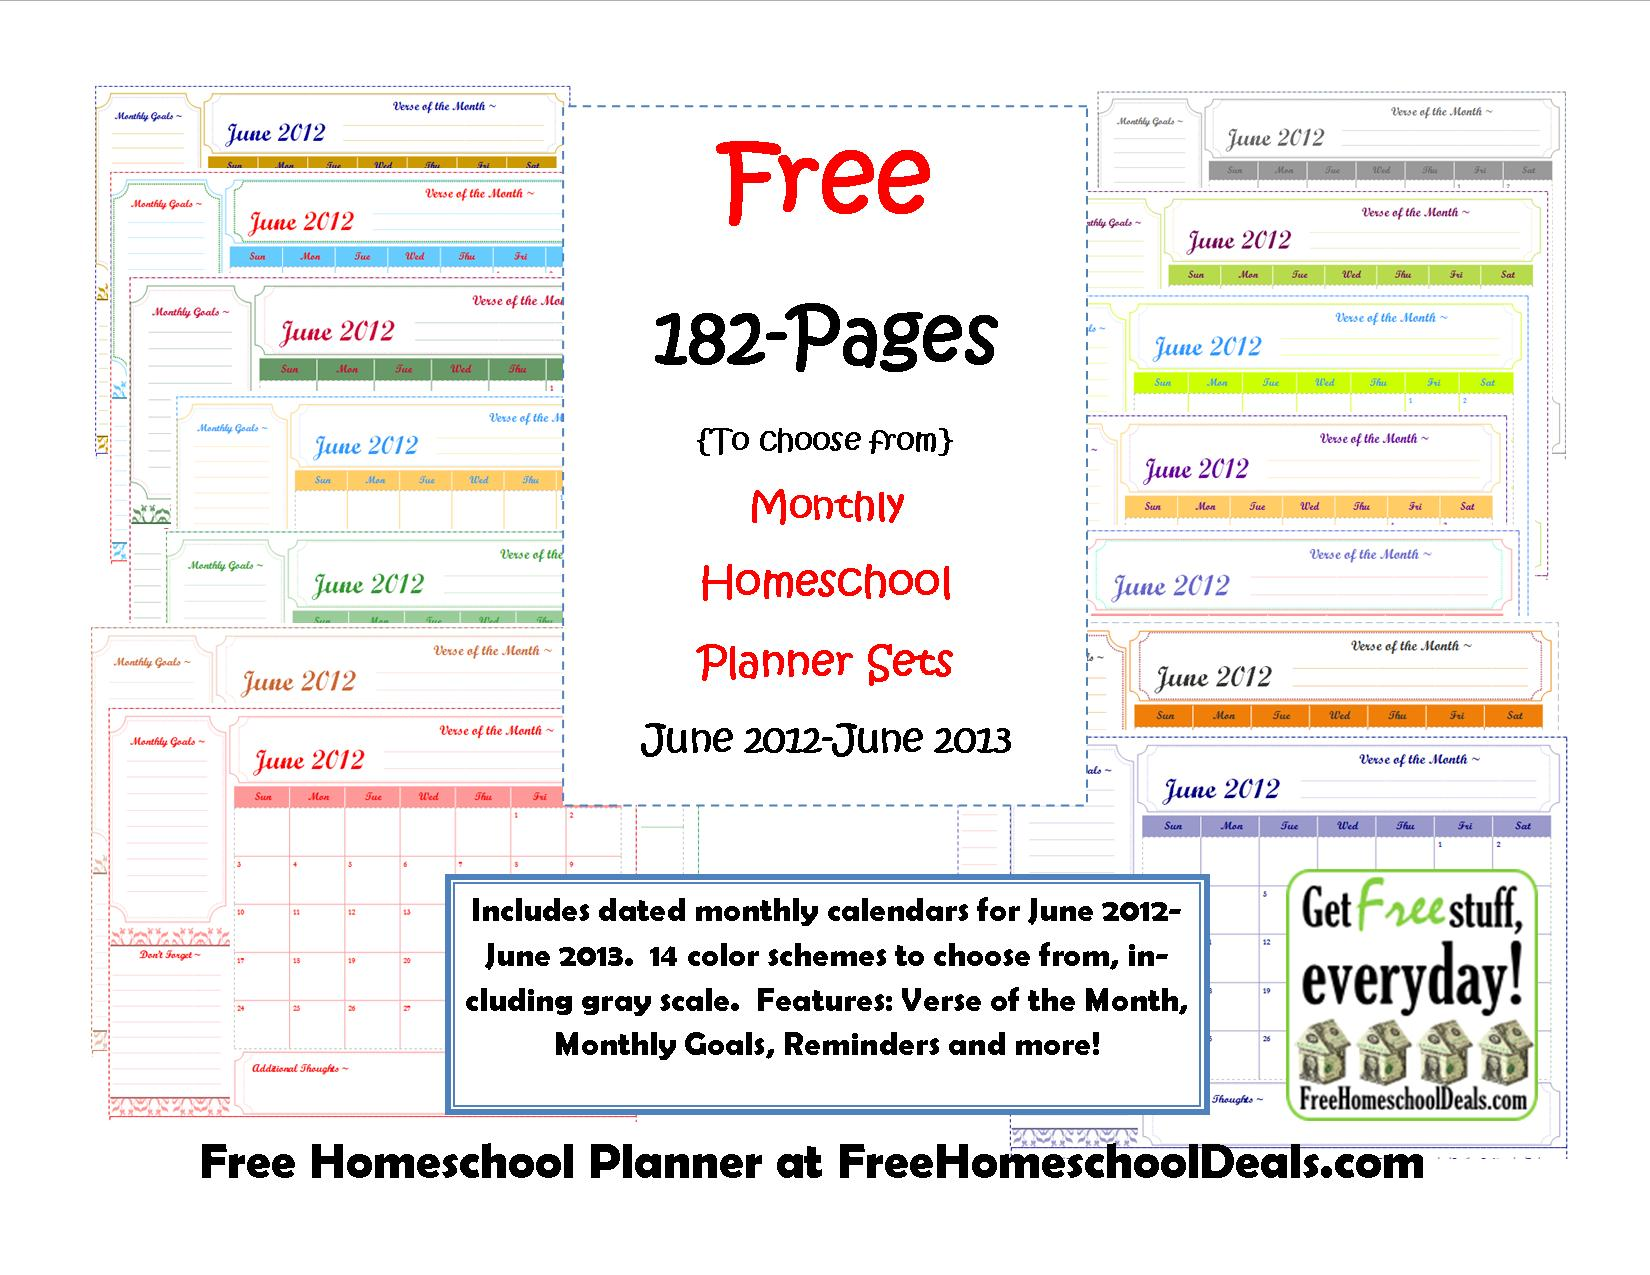 Weekly Calendar Homeschool : Free monthly homeschool planner sets pages